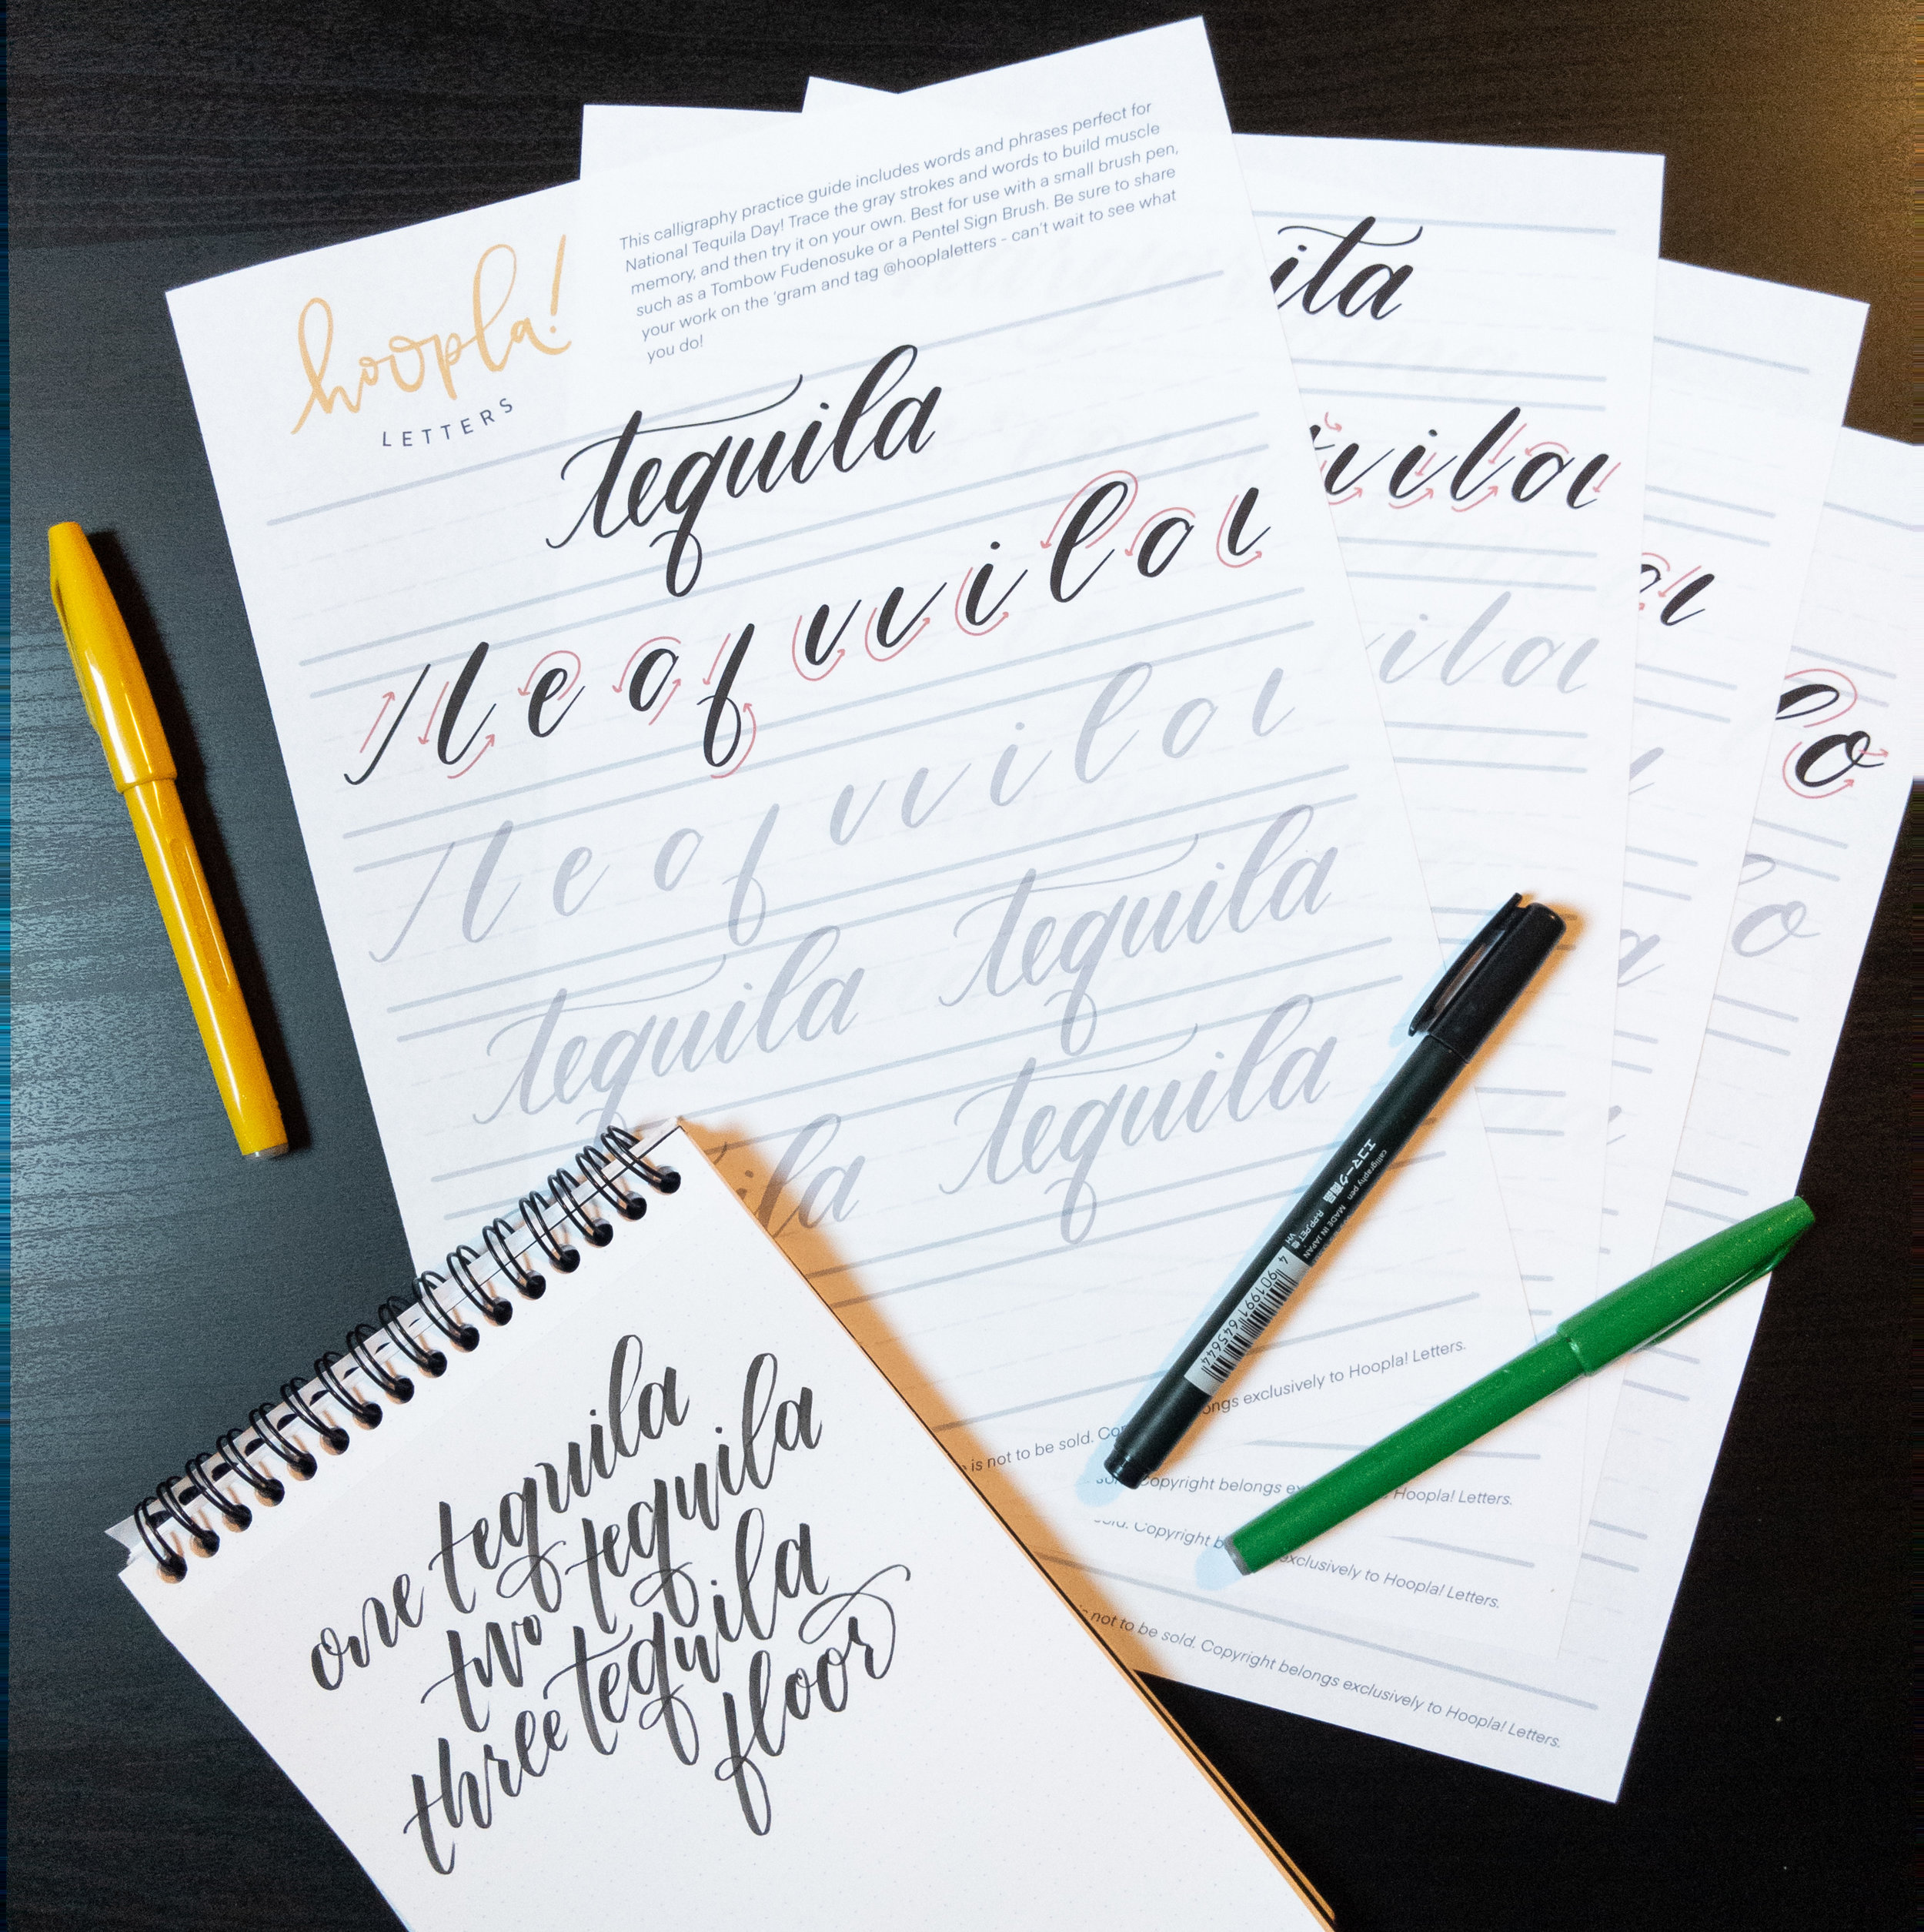 Tequila-Themed Calligraphy Practice Mini-Workbook | Hoopla! Letters